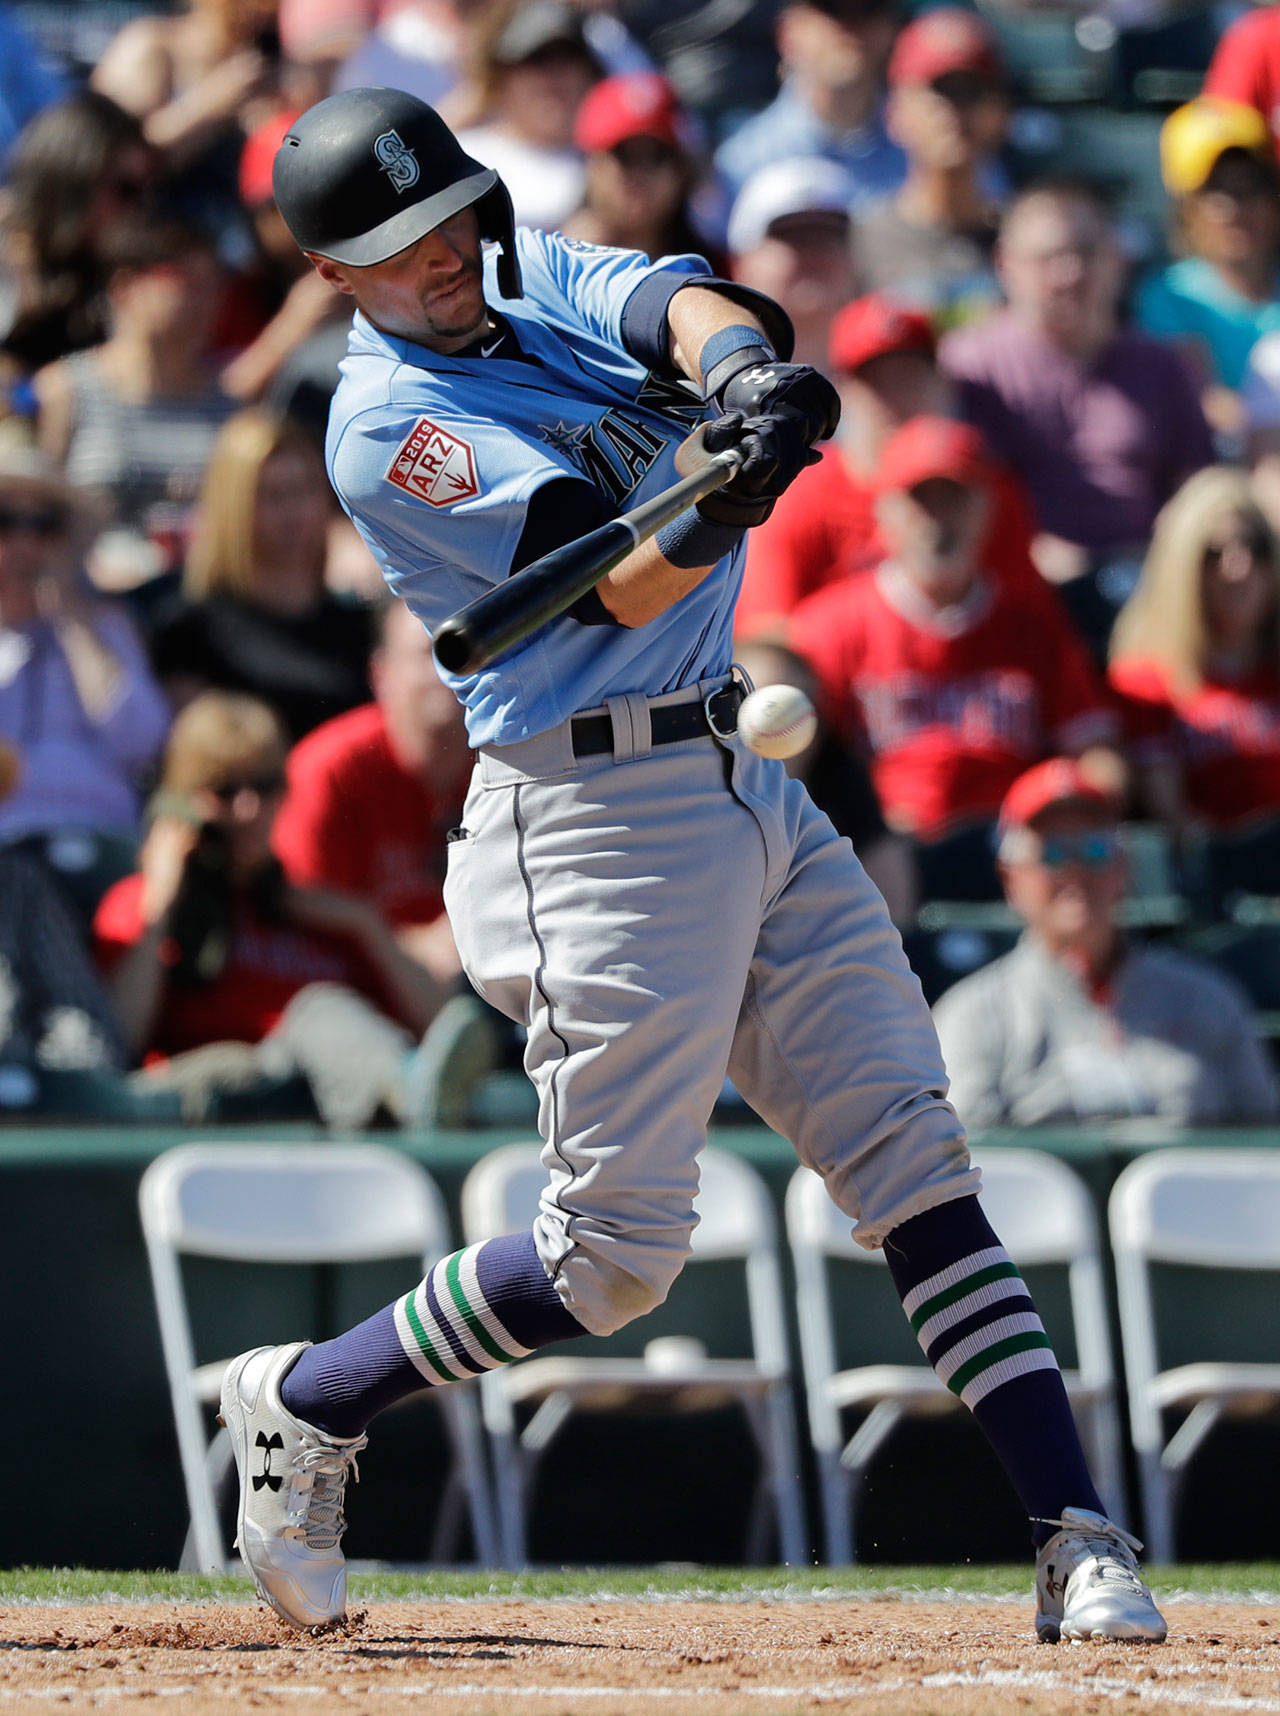 Mariners outfielder Braden Bishop bats during a spring game against the Angels on March 10, 2019, in Tempe, Ariz. (AP Photo/Elaine Thompson)